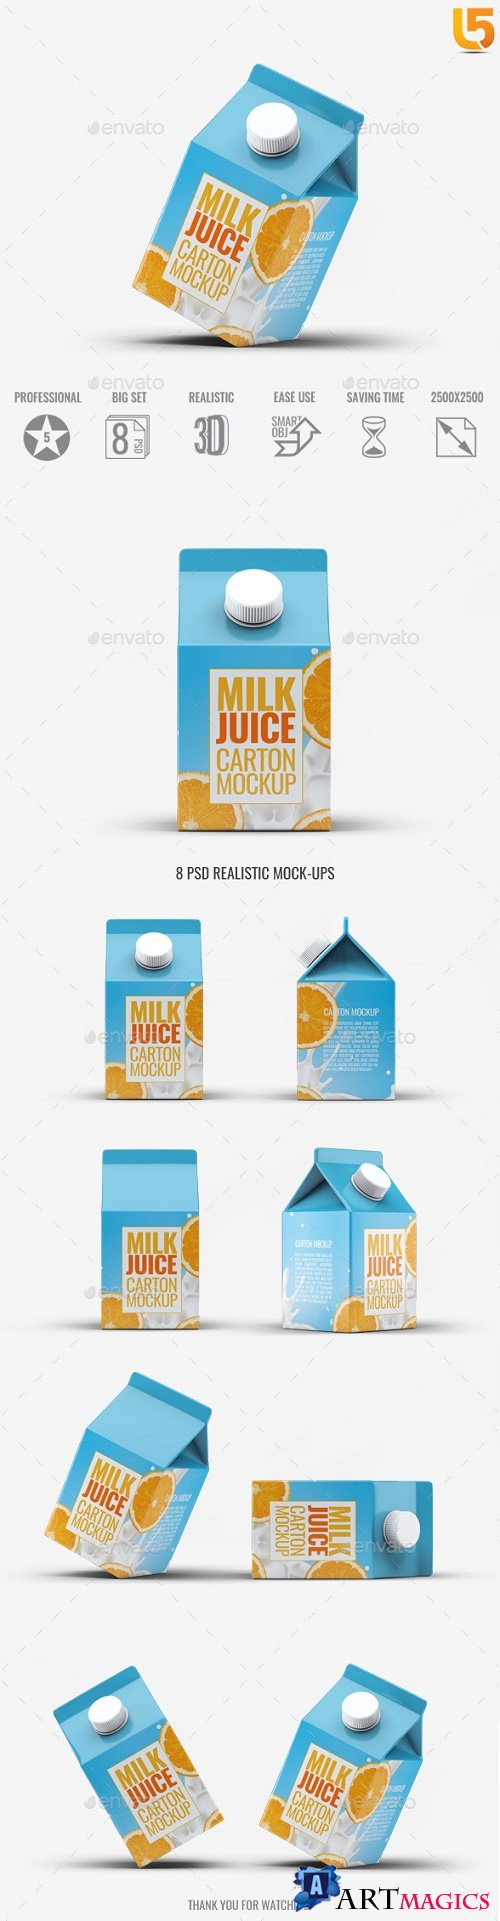 Milk or Juice Carton Mock-Up v4 - 21791464